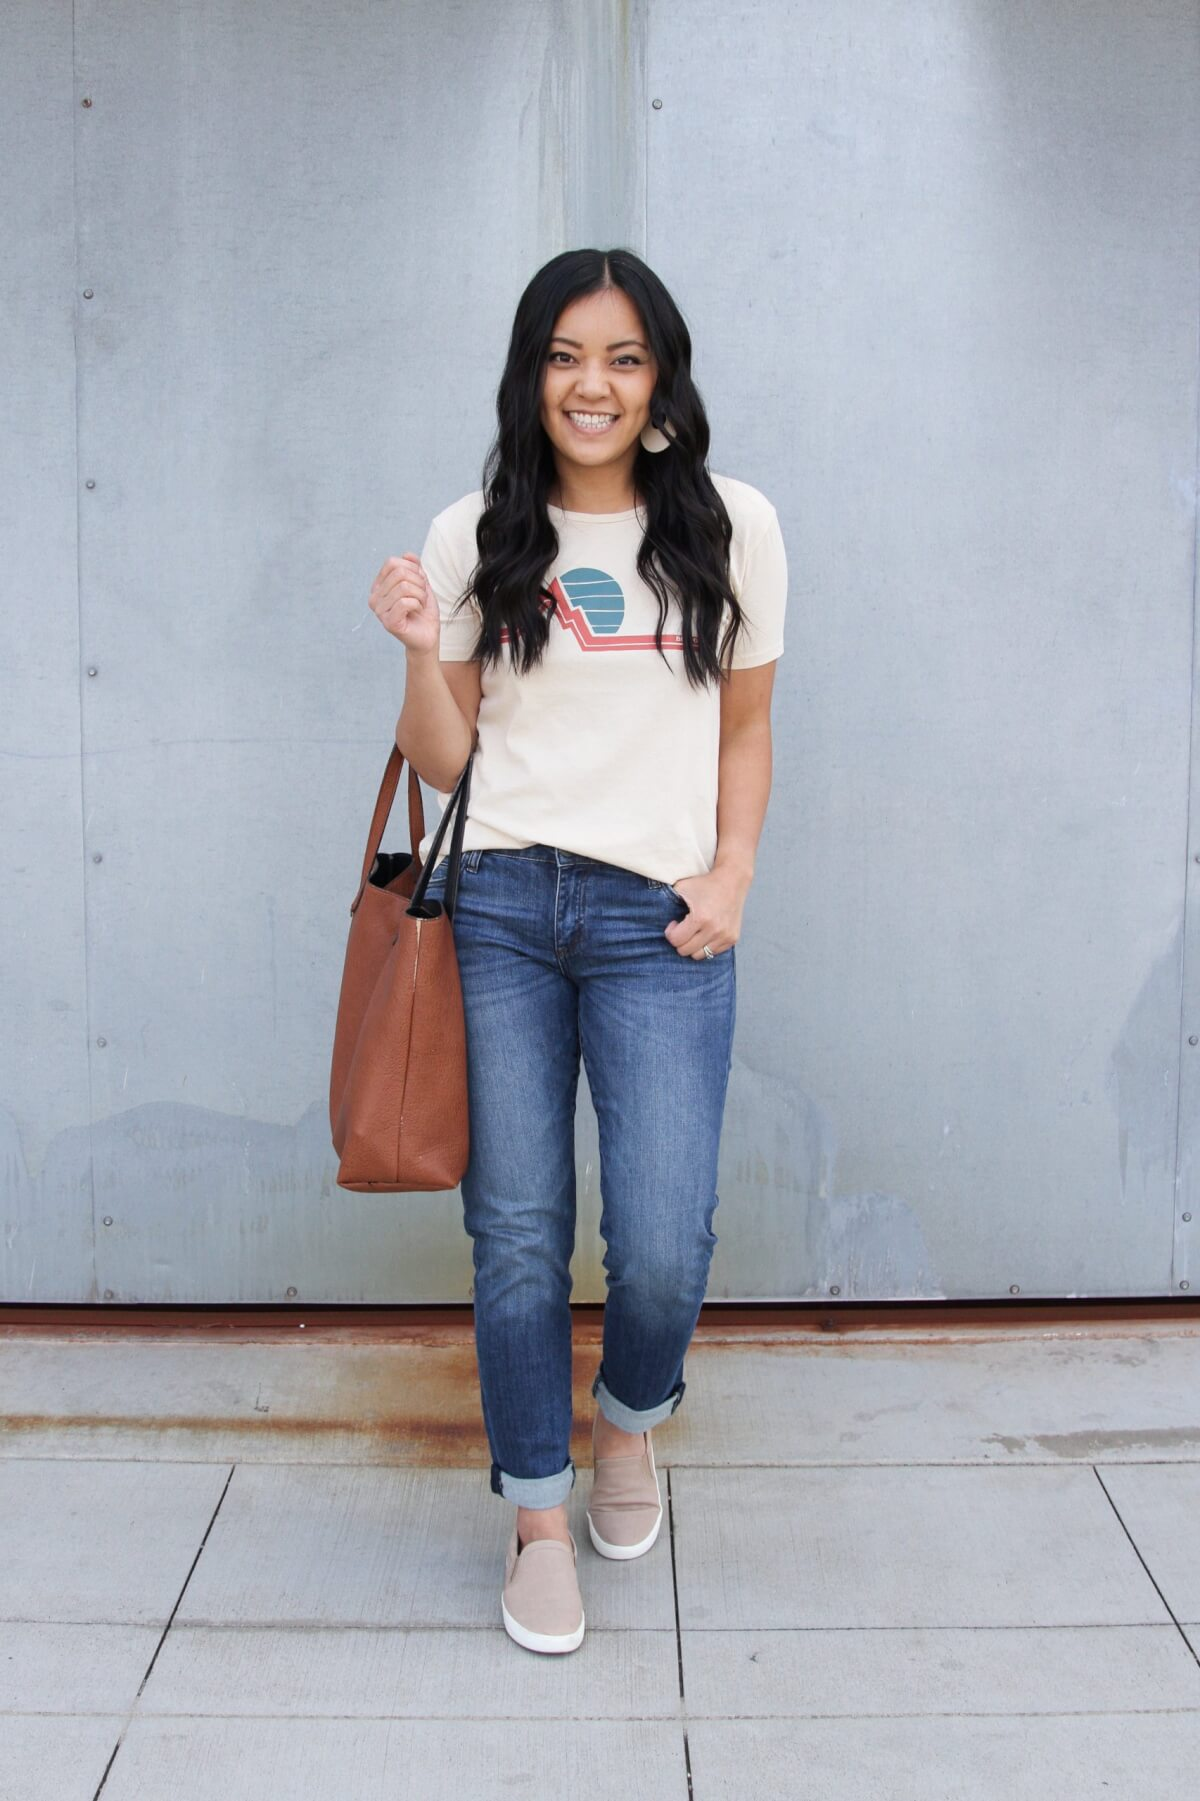 Easy to Wear Shoes for Spring: Oatmeal Naturalizer slip-on sneakers + graphic tee + KUT from the Kloth boyfriend jeans + white earrings + brown tote